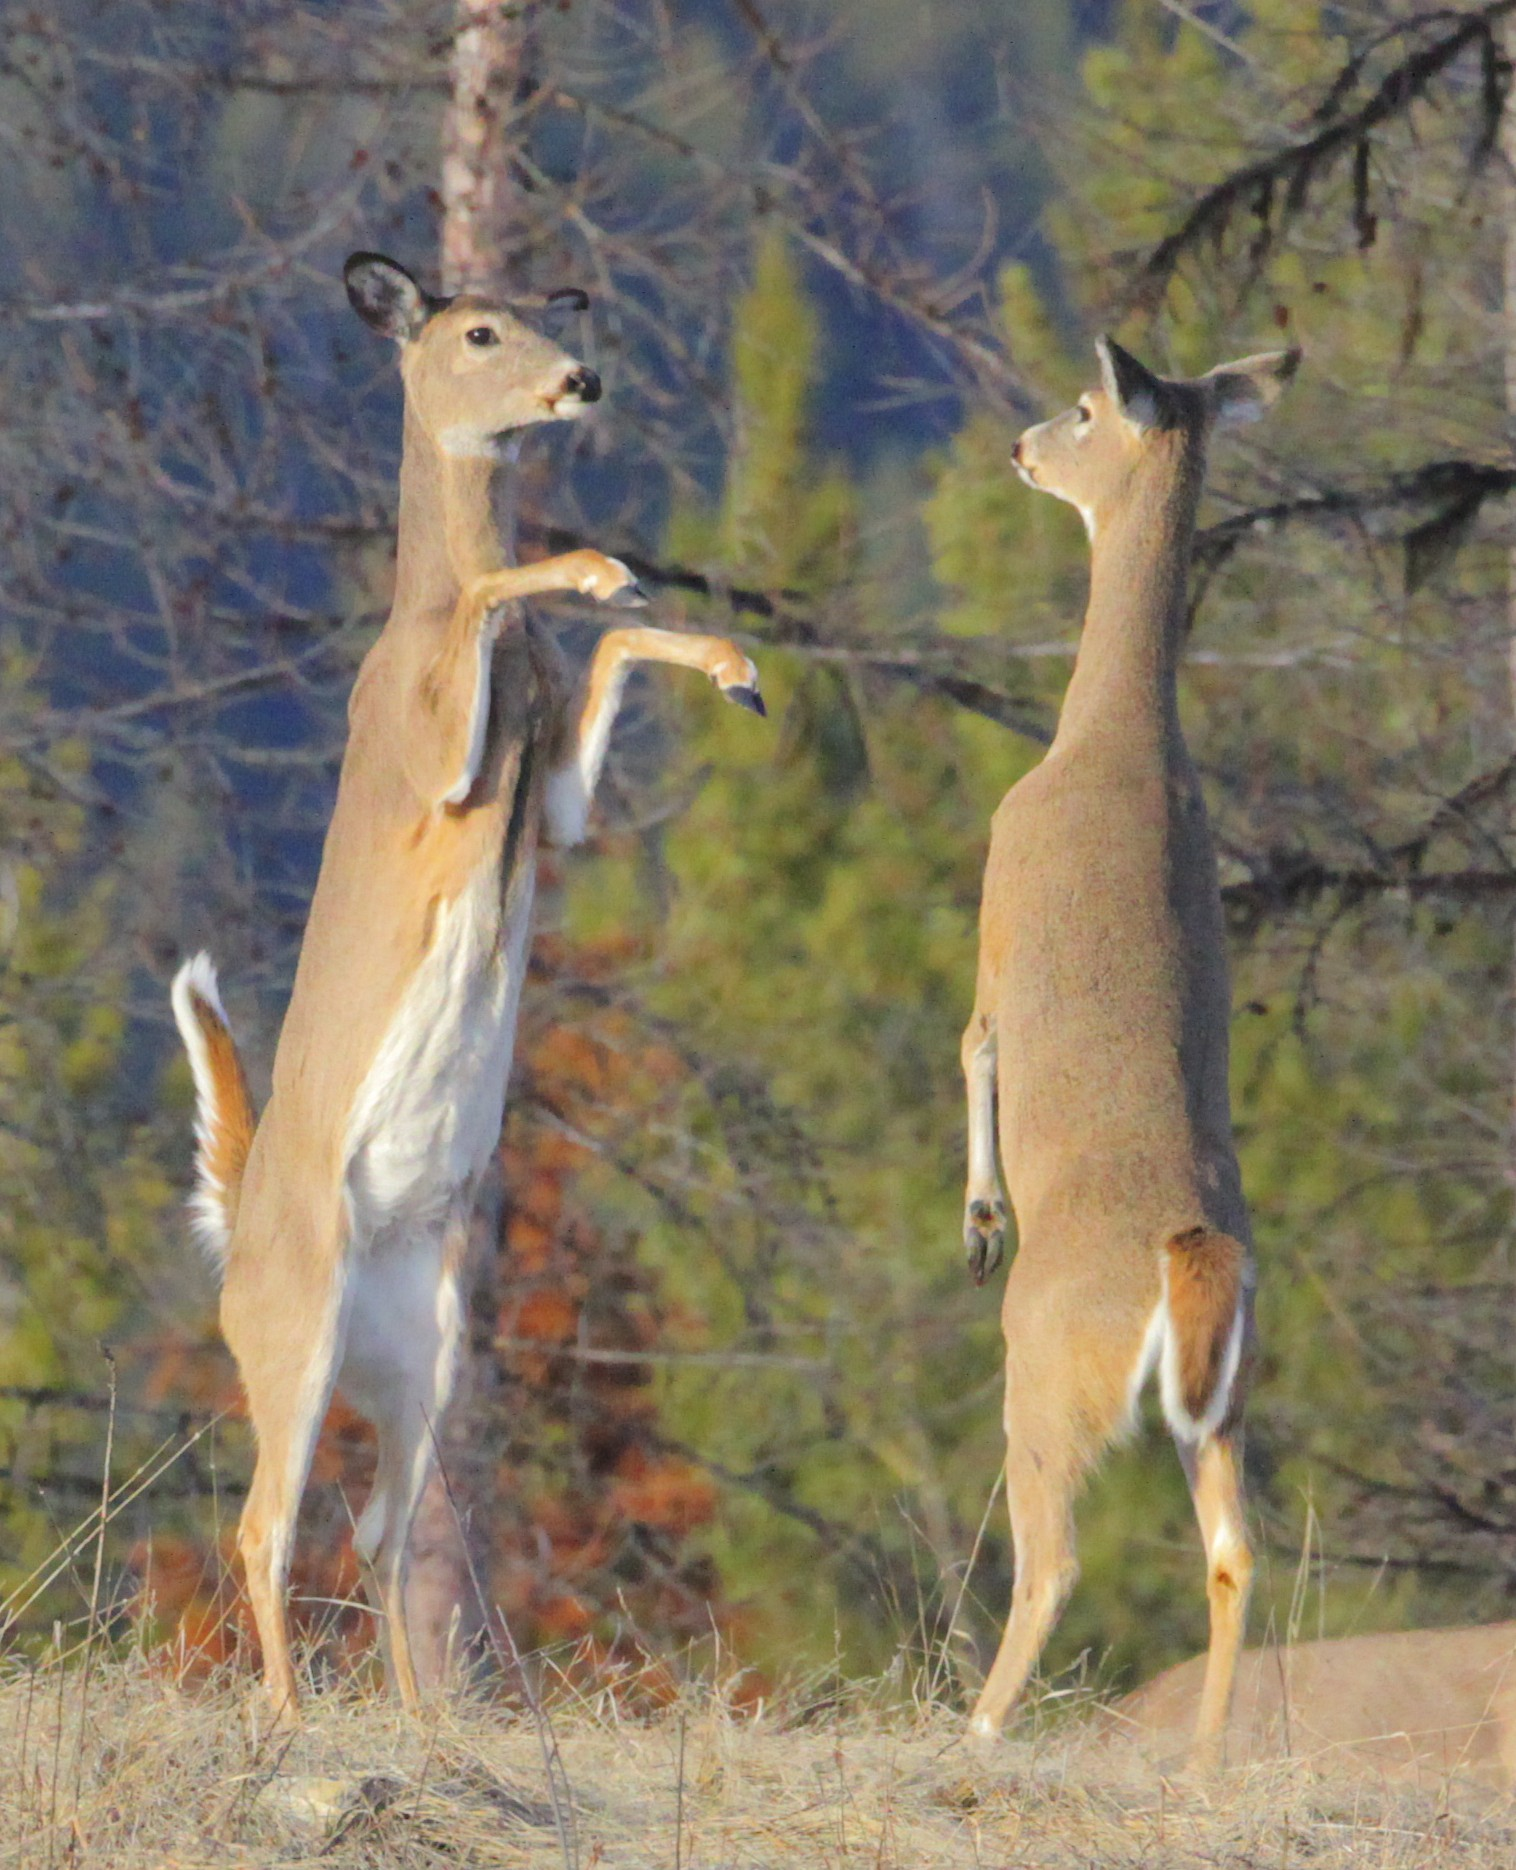 White-tailed Deer (Odocoileus virginianus) | MPG North